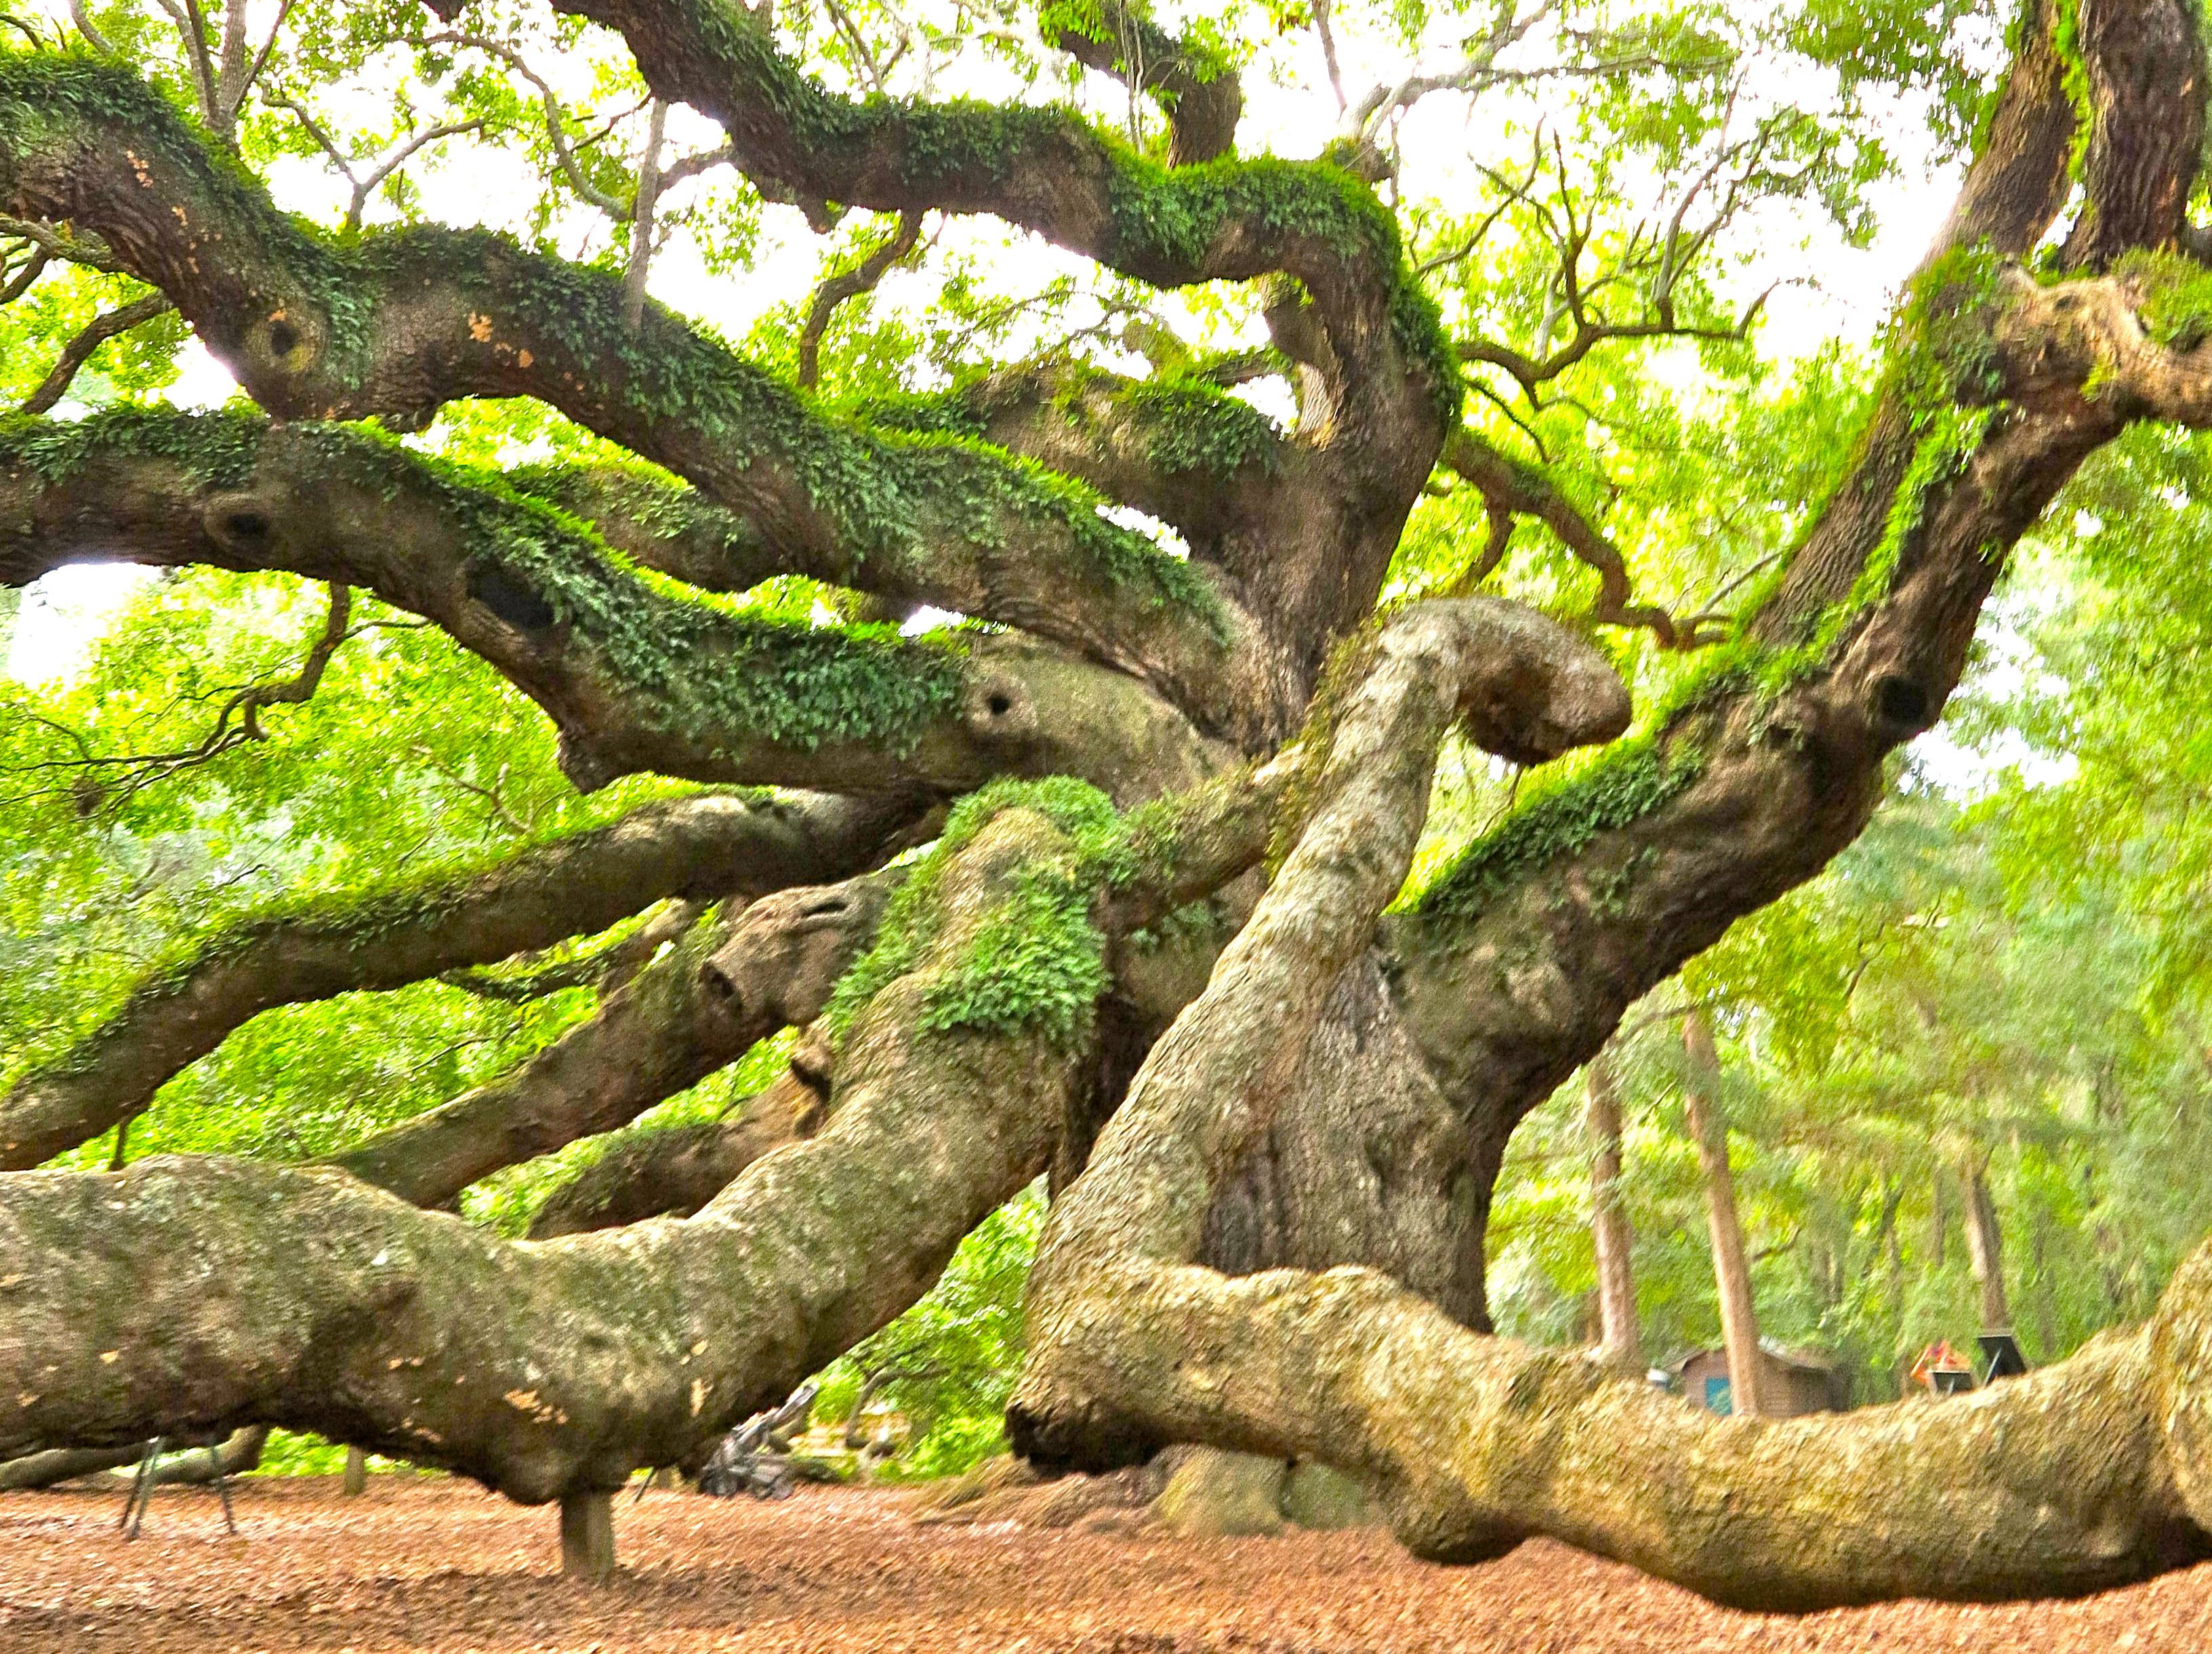 Angel Oak Property Purchased By Land Trust - The Island